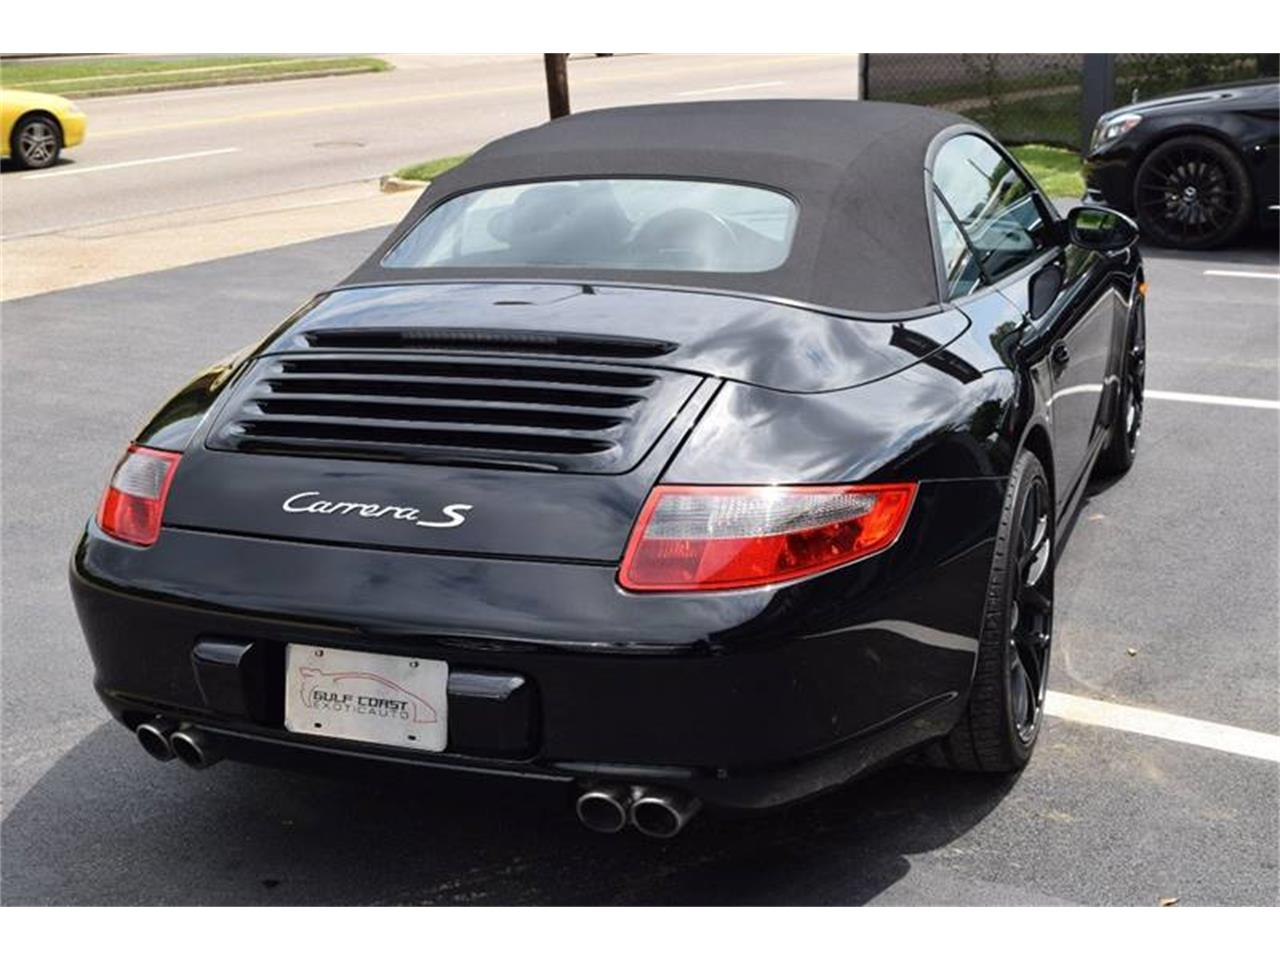 2006 Porsche 911 for sale in Biloxi, MS – photo 11